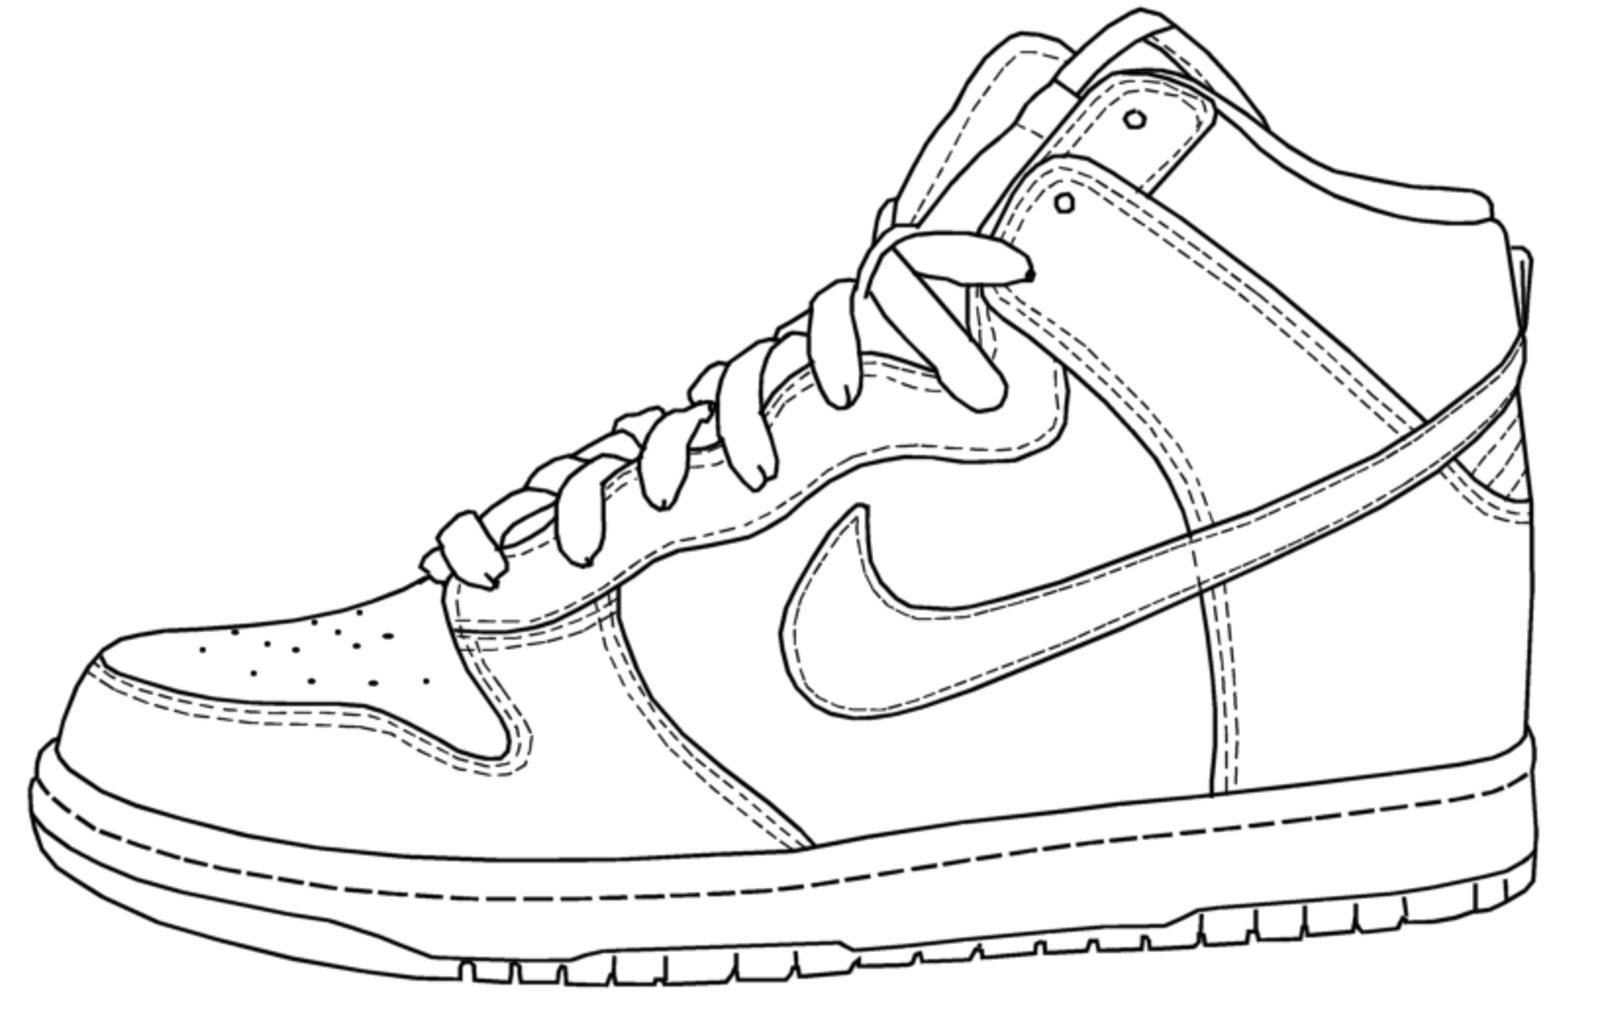 an artistic mash-up of different shoes. Purity of the original Nike ...